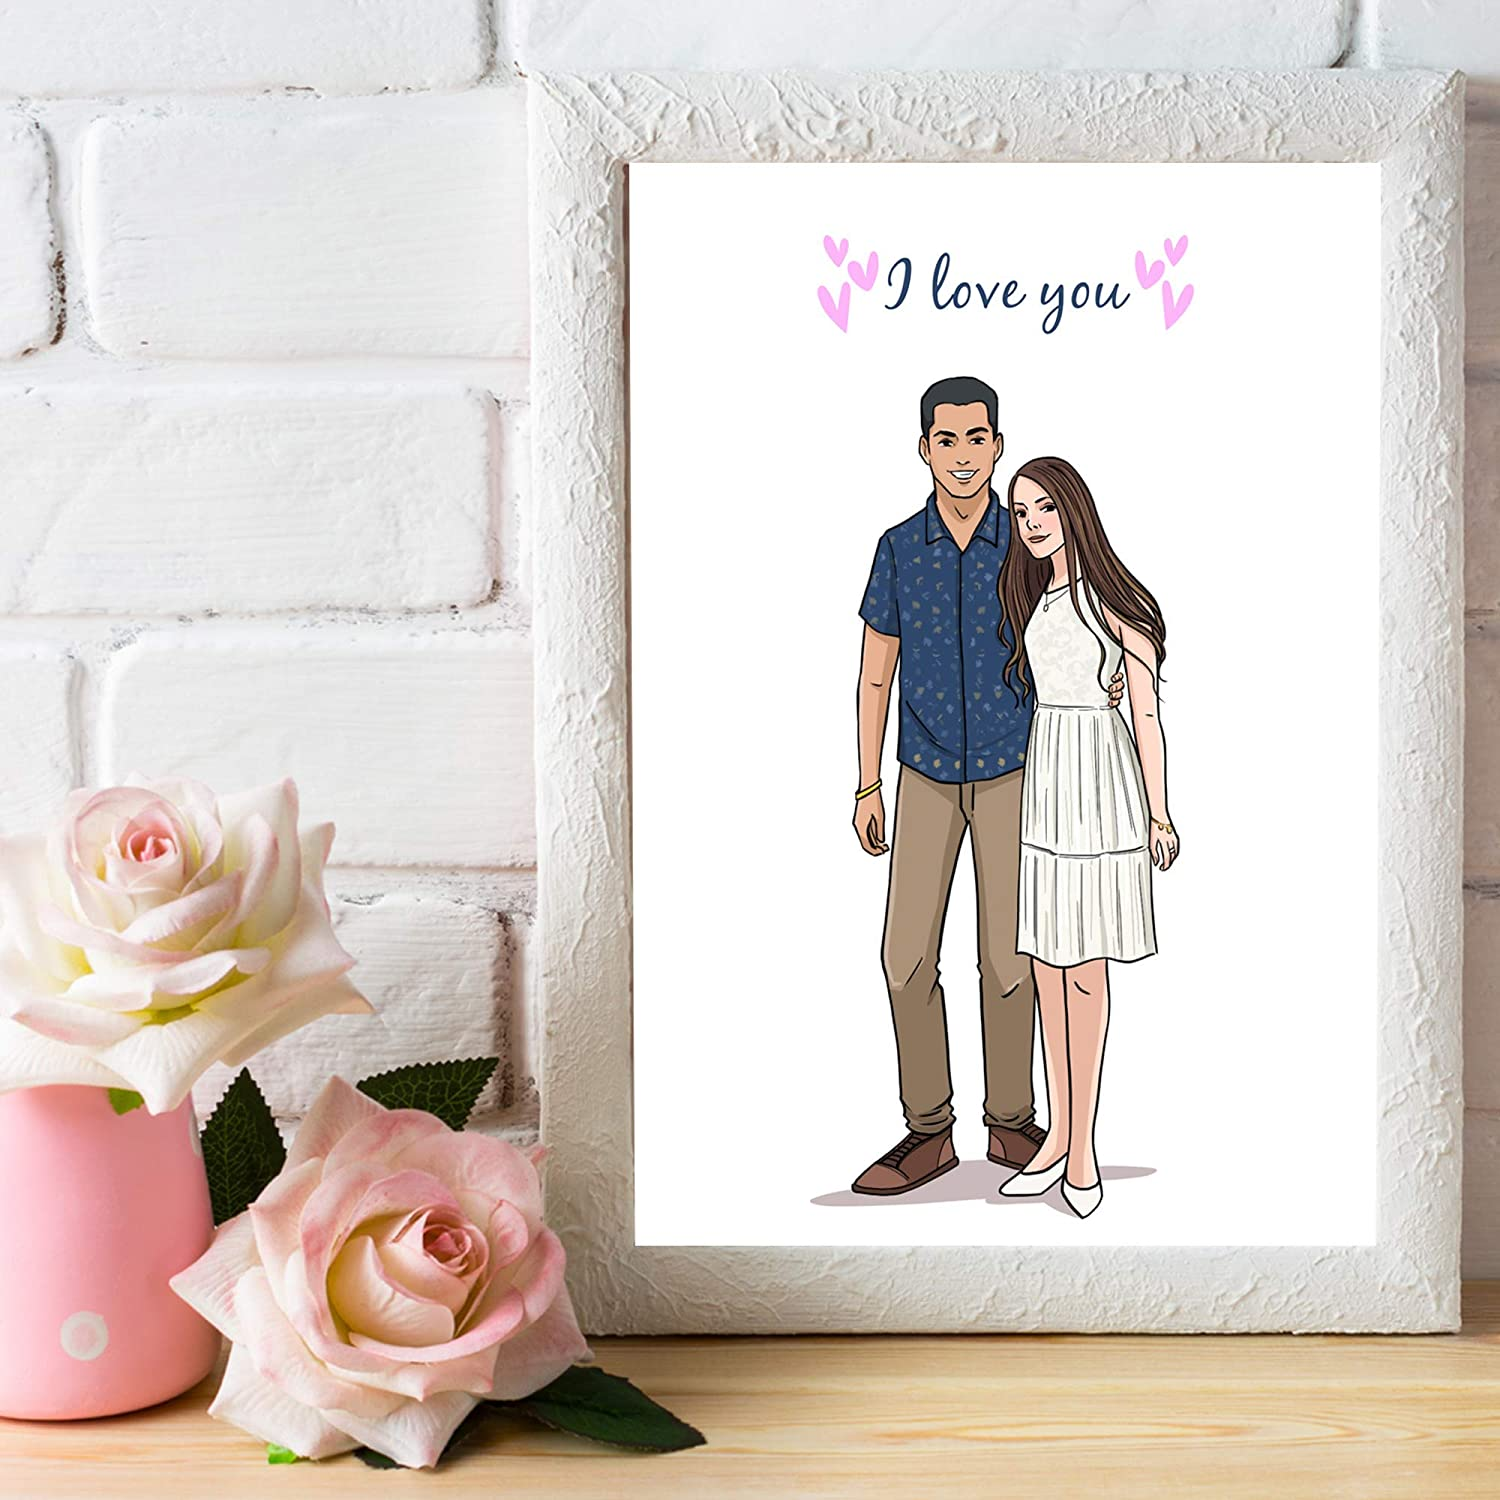 Personalized Anniversary Gift For Boyfriend - Custom Hand Drawn Portrait Of Couple - Sentimental Relationship Keepsake To Say I Love You